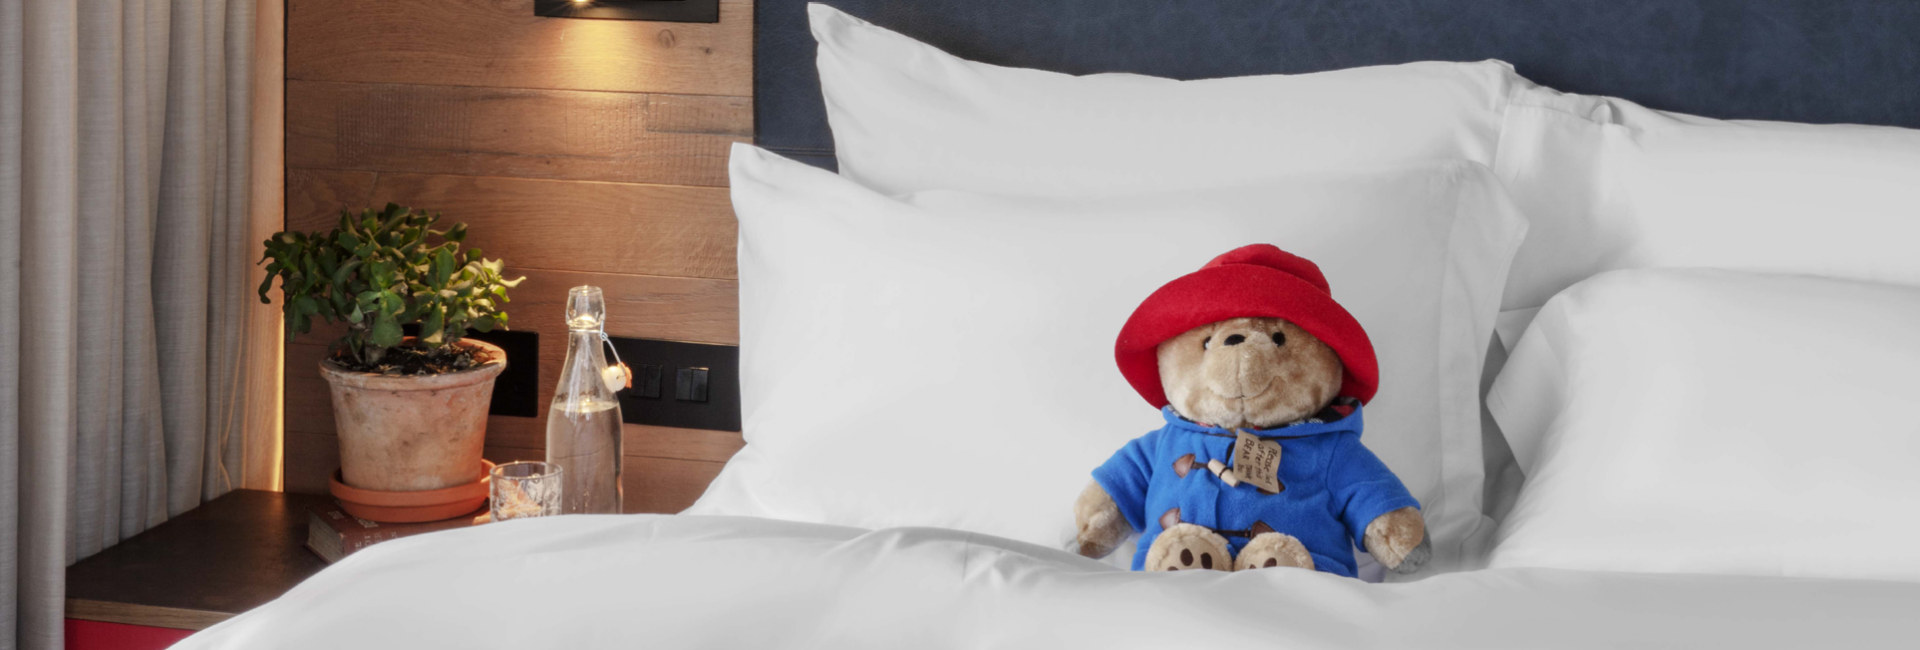 Paddington bear on hotel bed